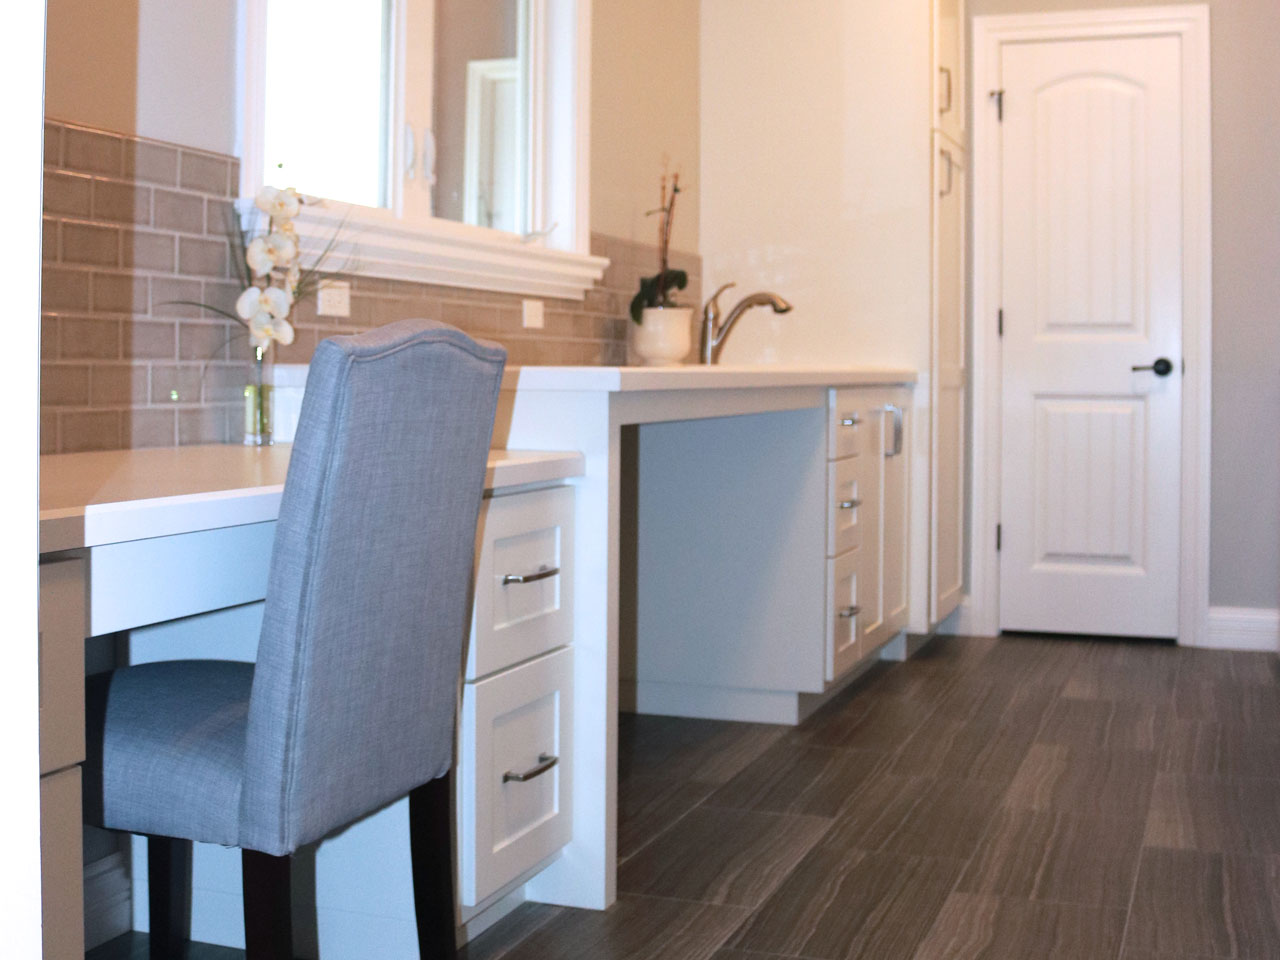 File Construction can remodel a bathroom to fit the design idea of the client.